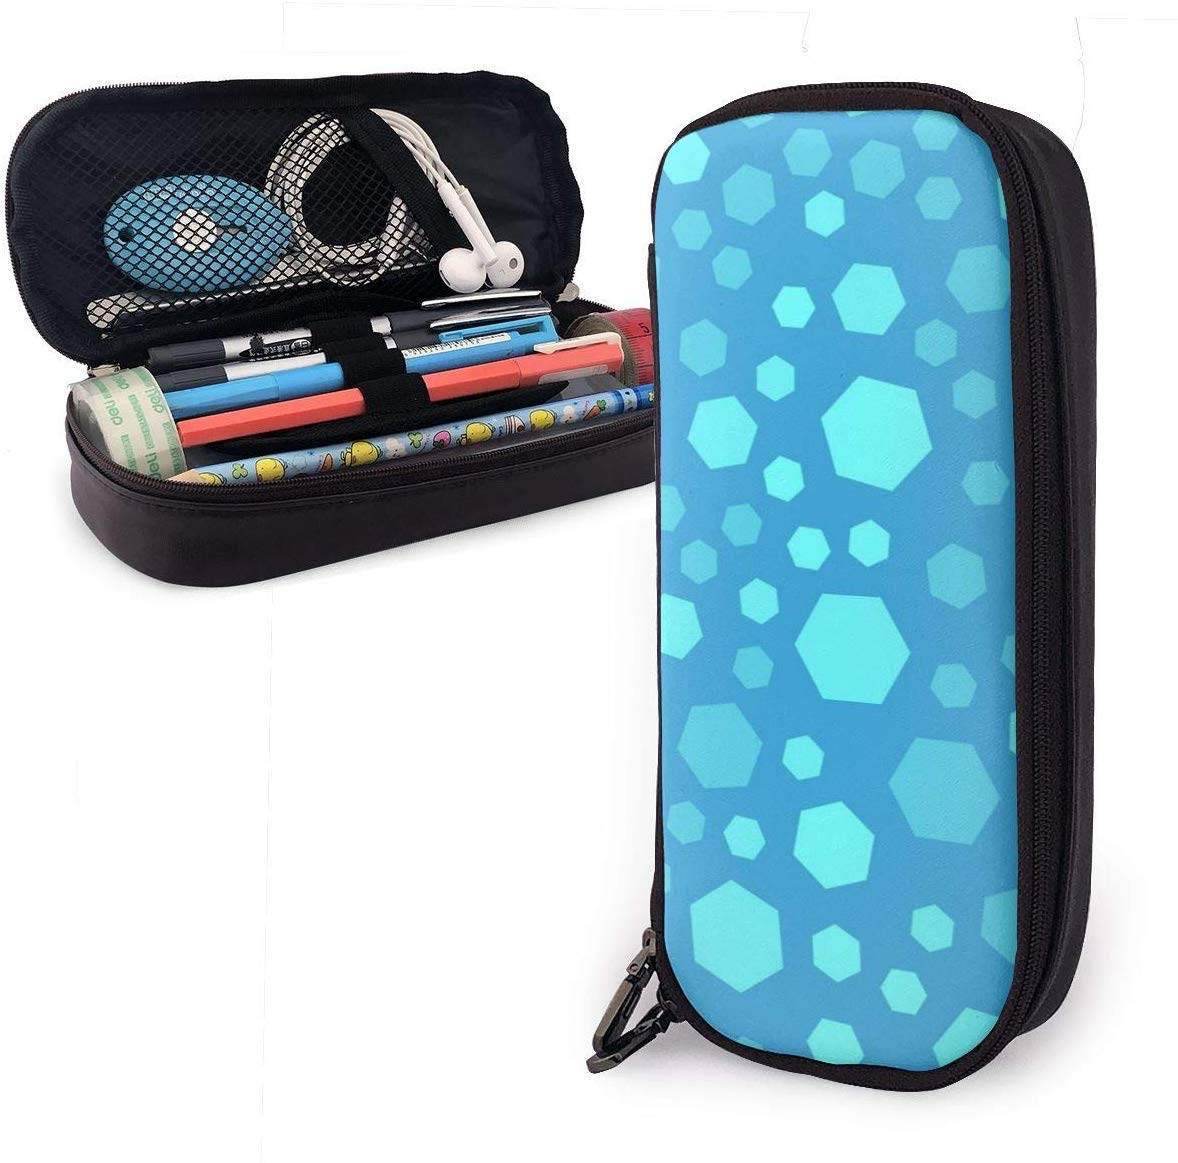 Light-blue-polygon PU Leather Pouch Storage Bags Portable Student Pencil Office Stationery Bag Zipper Wallets Makeup Multi-function Bag: Amazon.es: Oficina y papelería